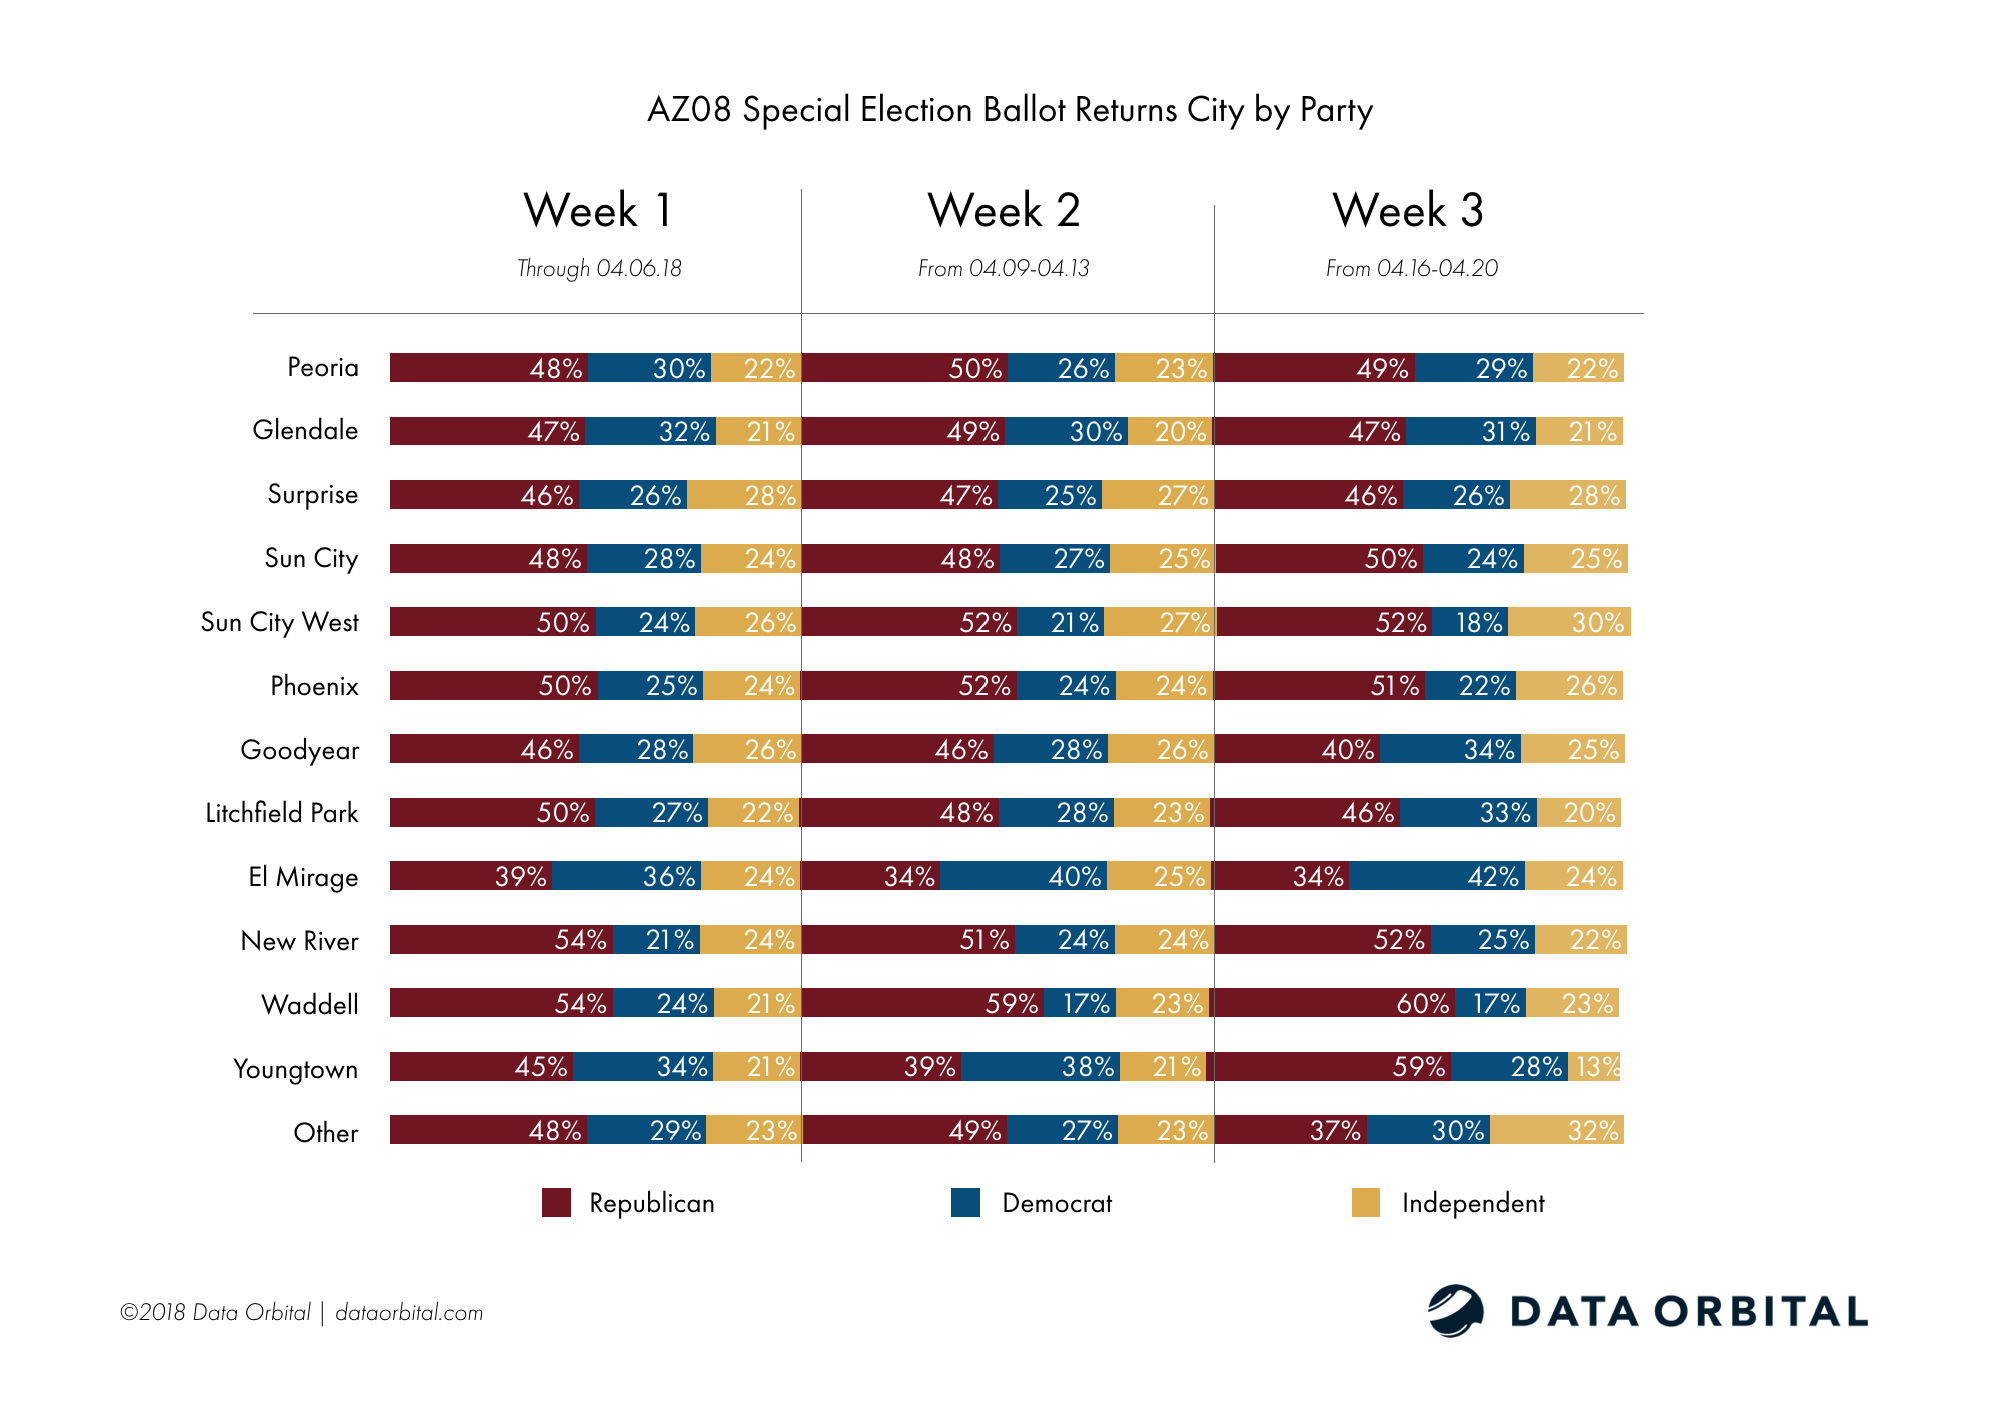 AZ08 Special Election Ballot Returns Week 3 Wrap Up and Analysis City by Party